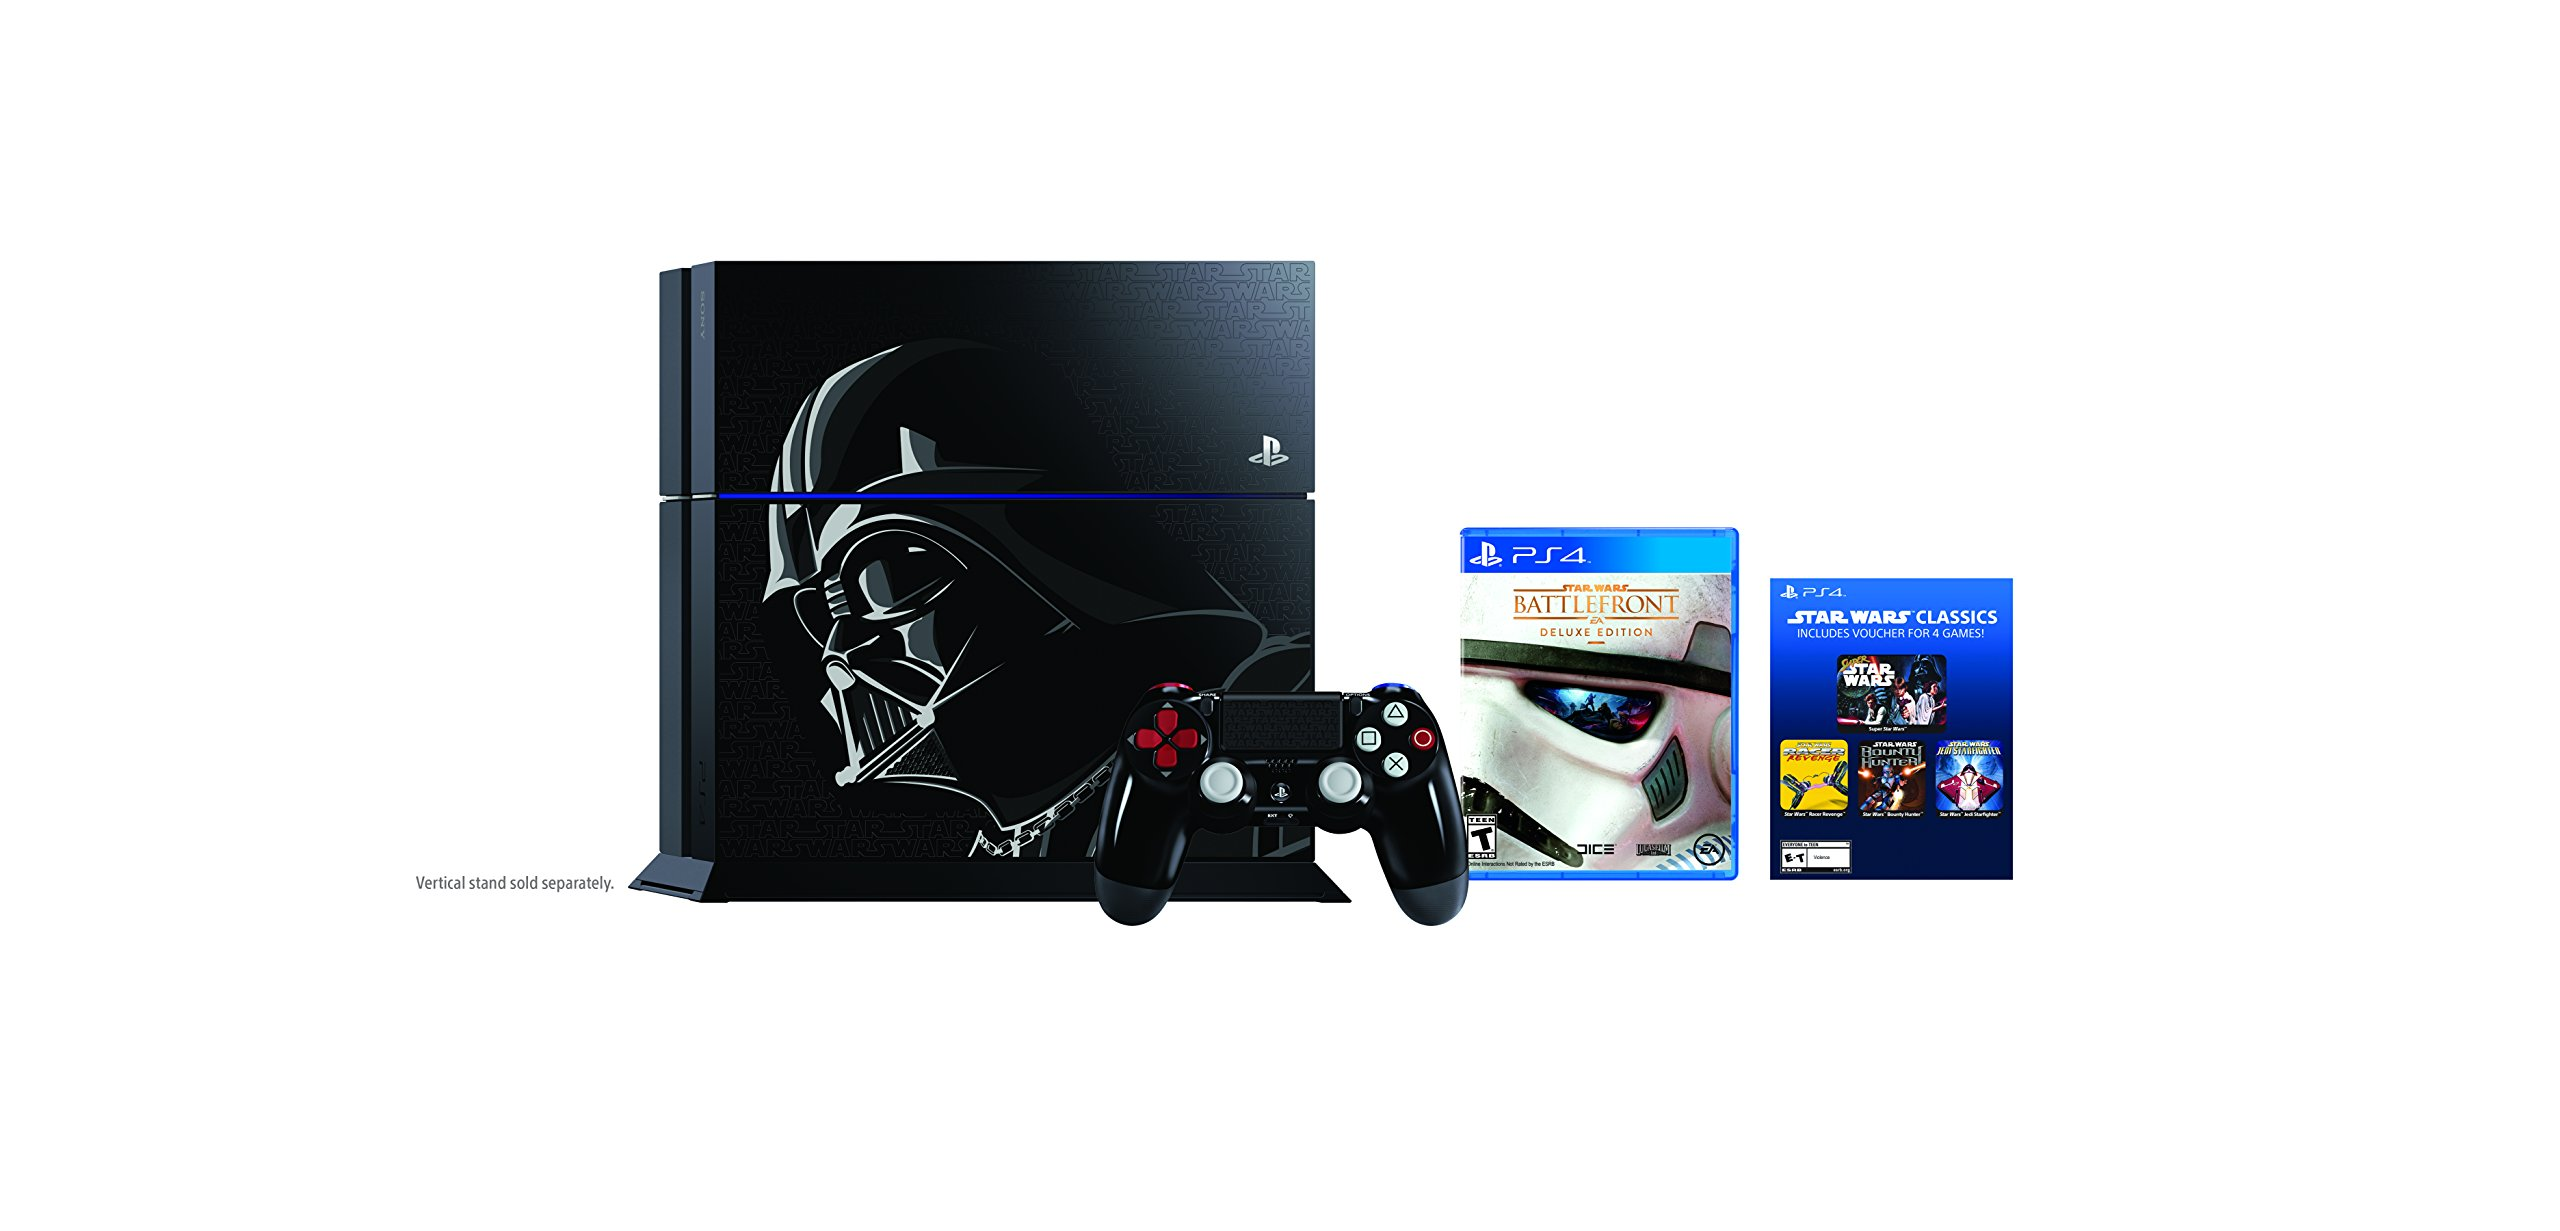 Sony PlayStation 4 500 GB Consola - Star Wars Battlefront Pack de Edición Limitada [continuado]: Amazon.es: Videojuegos